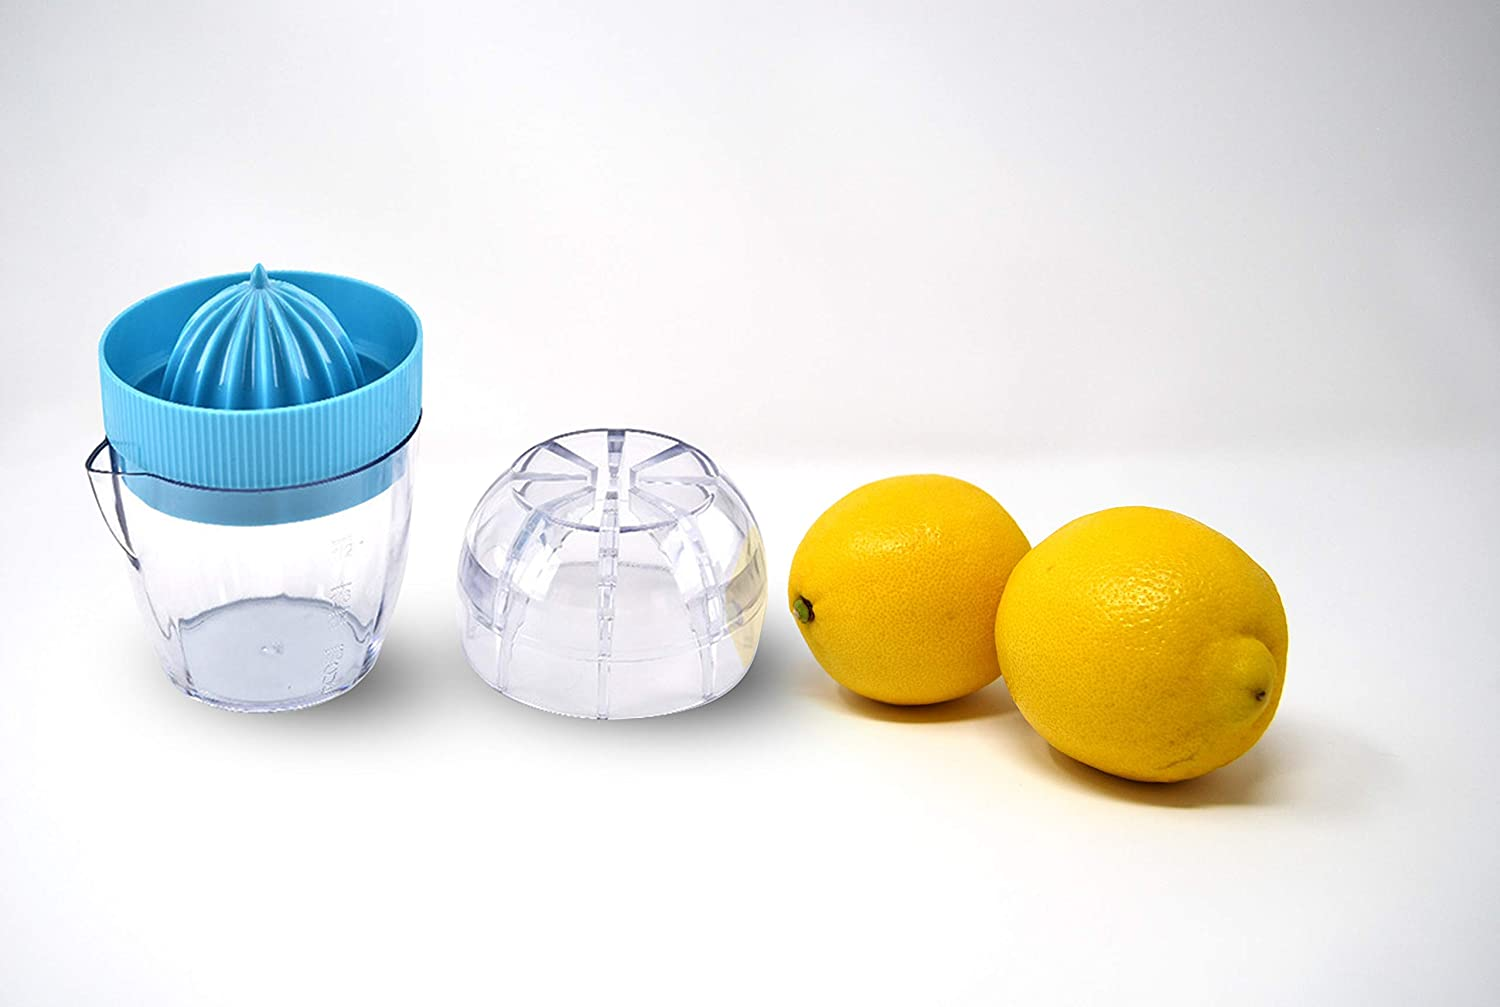 Metabao Manual Mini Lemon and Lime Squeezer Juicer with Measuring Cup